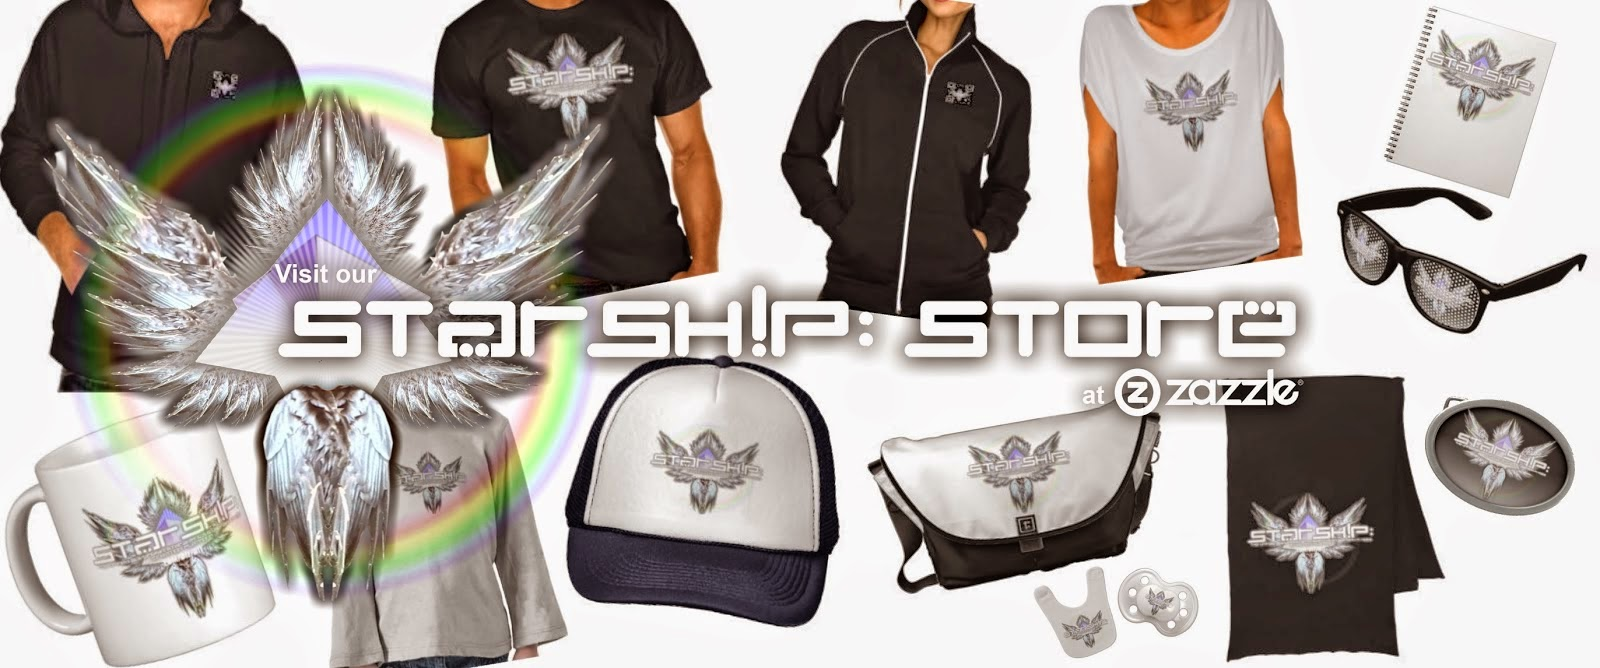 http://www.zazzle.com/starship_store/gifts?st=ranking&sd=asc